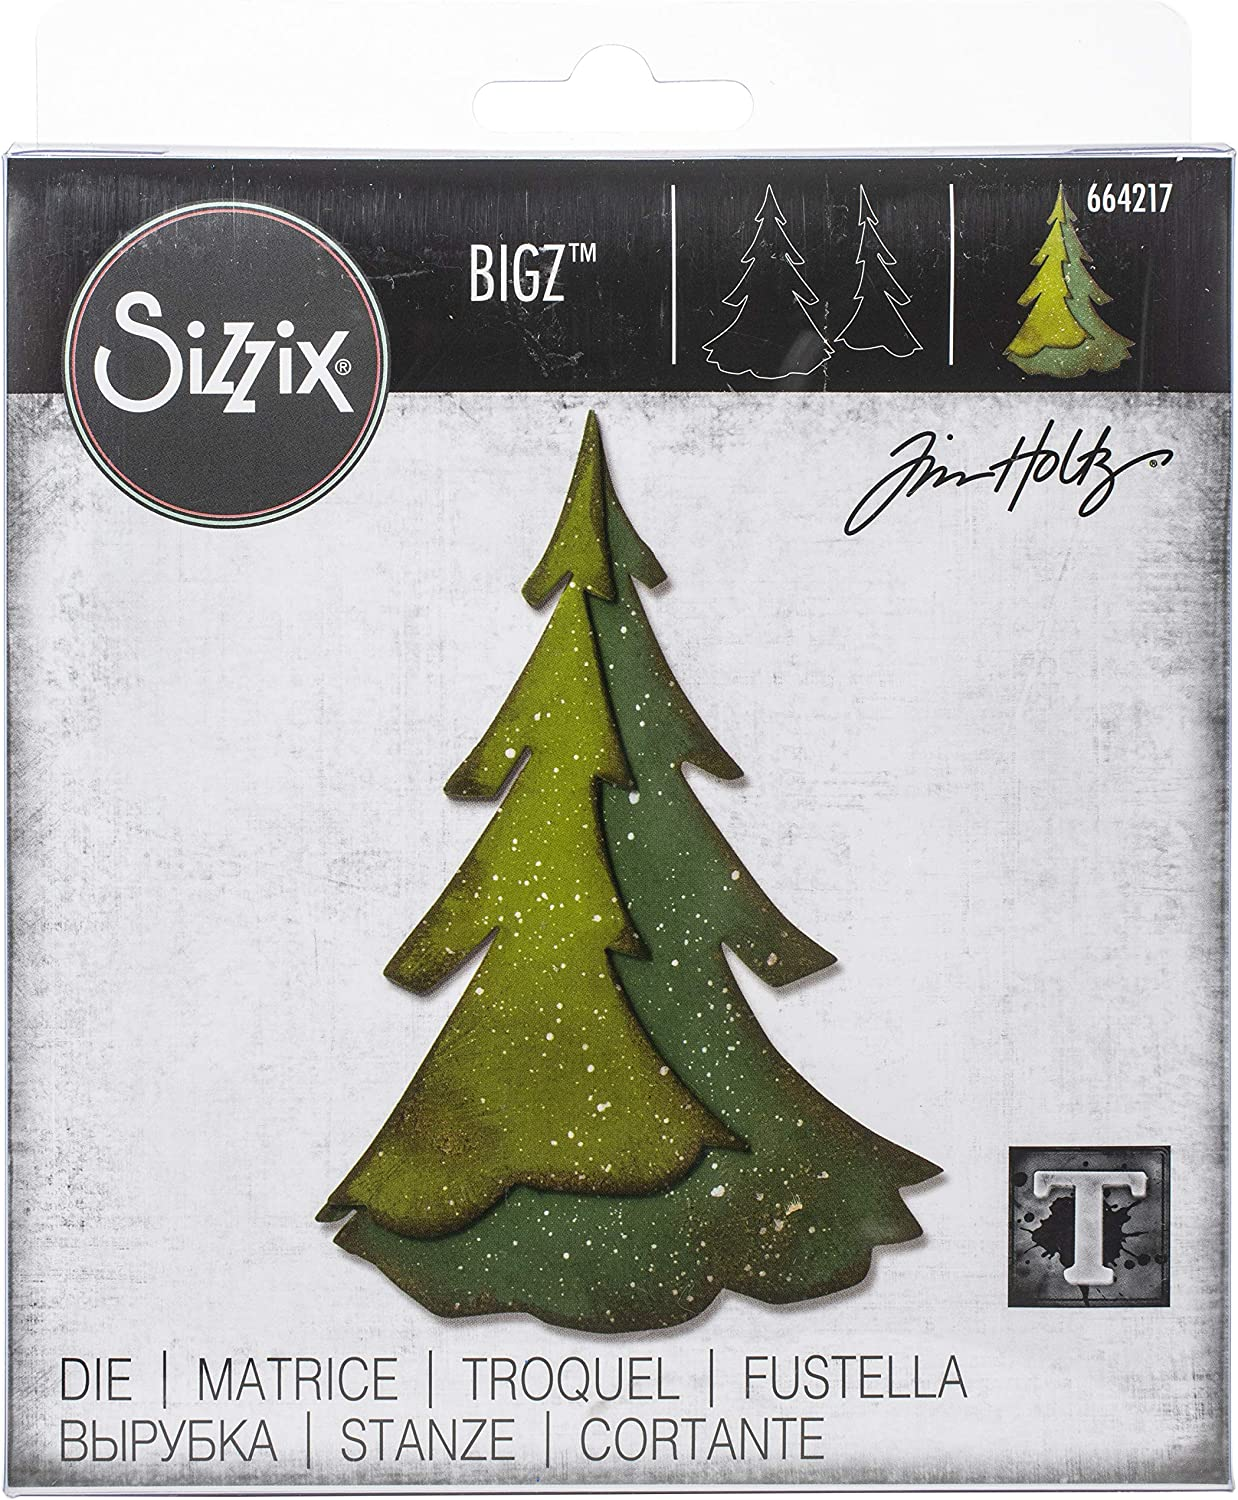 Sizzix Tim Holtz Dies, Layered Pine Tree